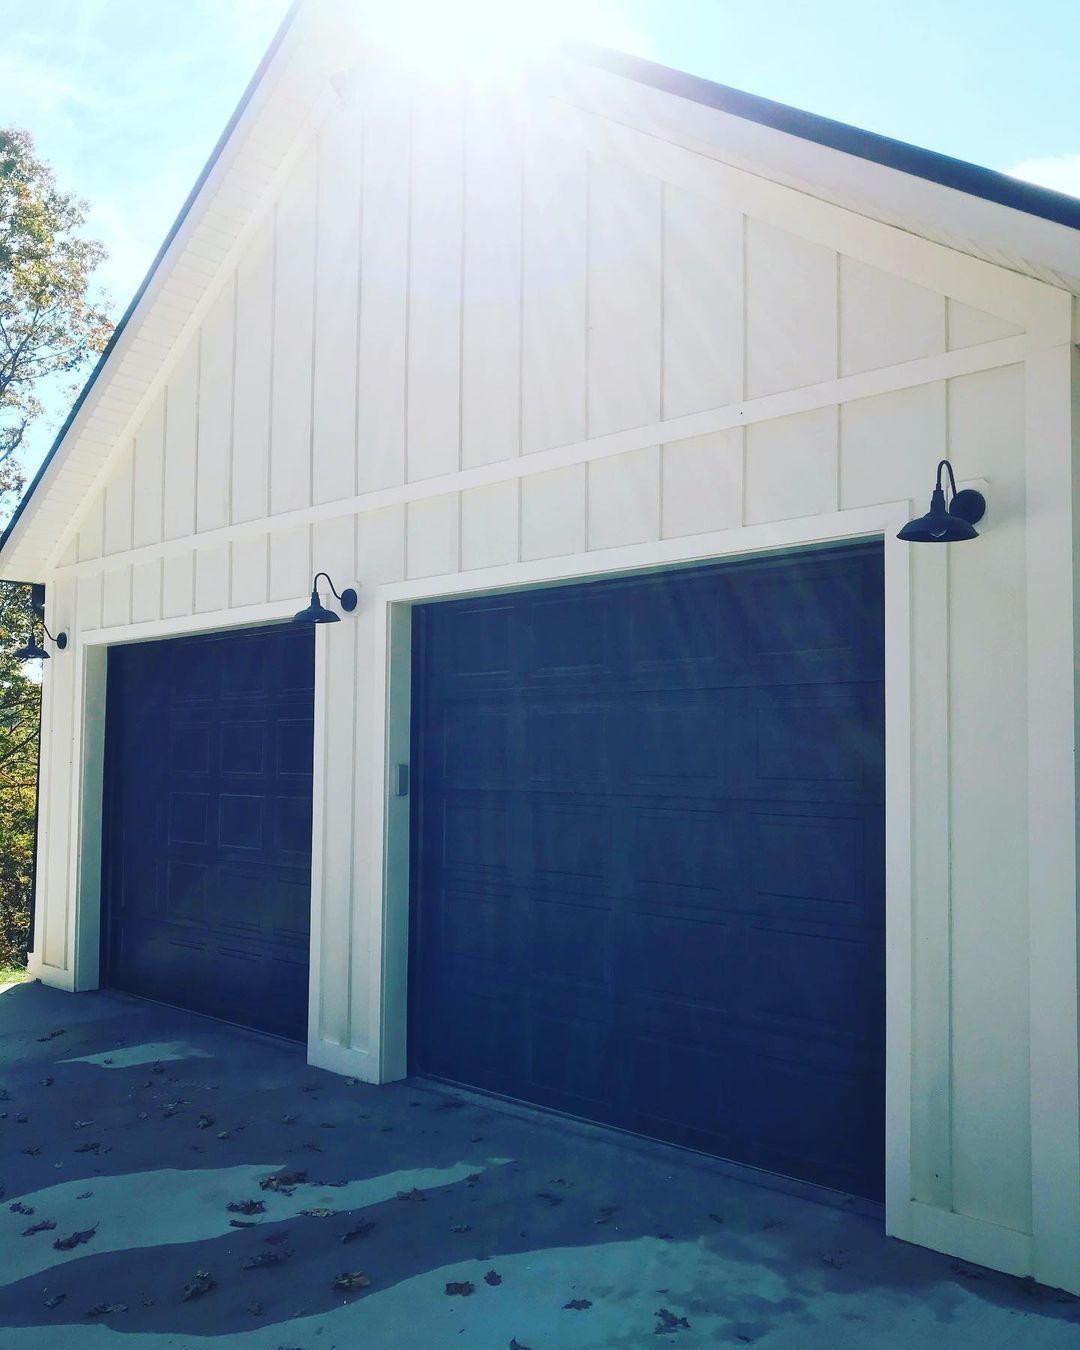 So Thankful Our Concrete Pad Was Poured So We Can Finally Have Clean Garage Doors Thanks For The Help Scrubbing Down Th In 2020 Clean Garage Concrete Pad Garage Doors